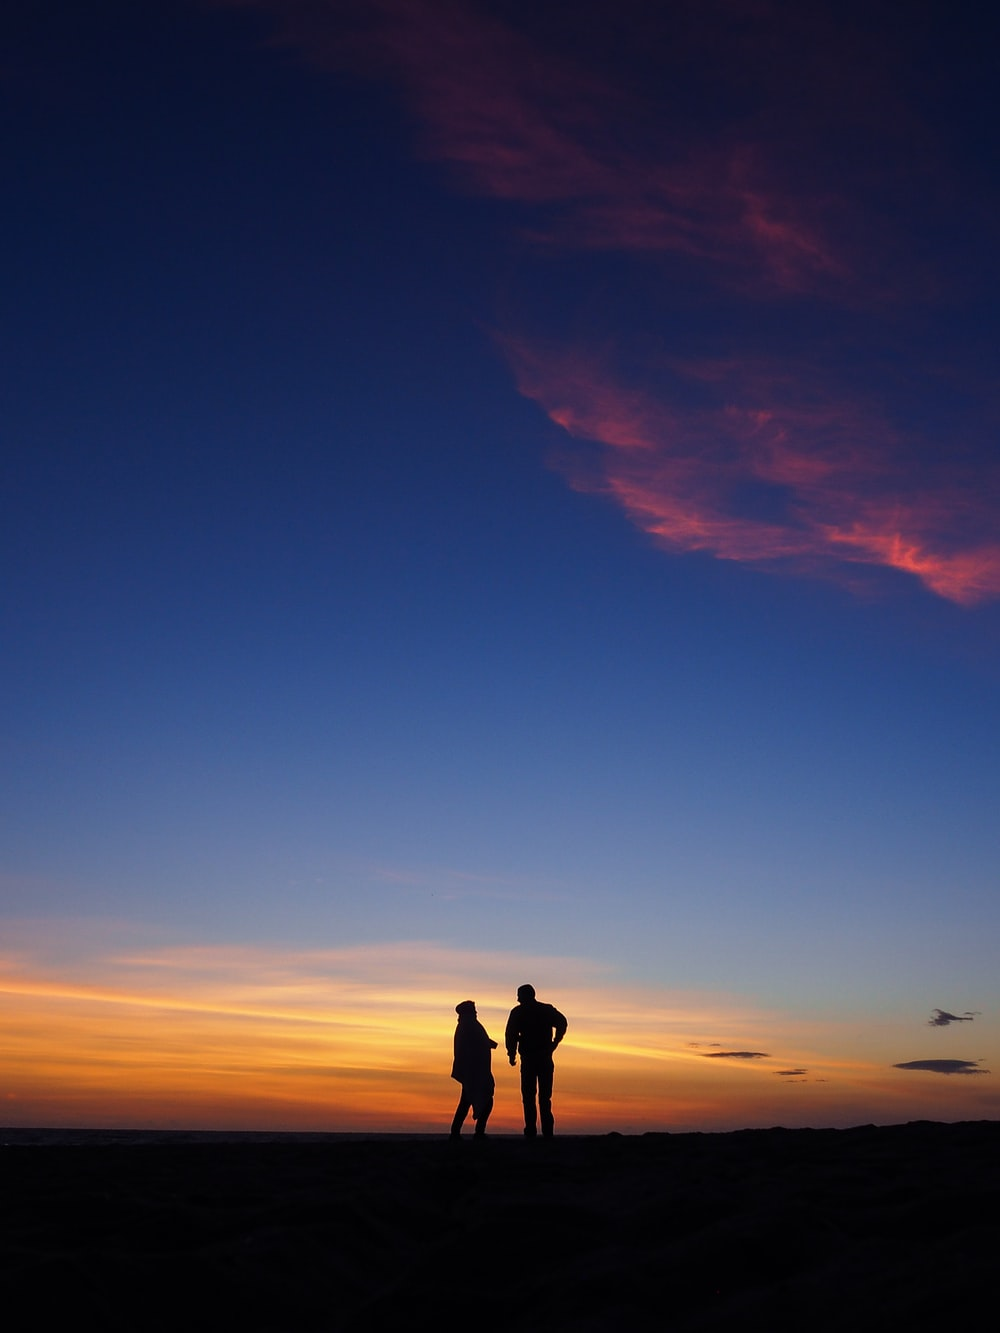 silhouette photography of two persons standing